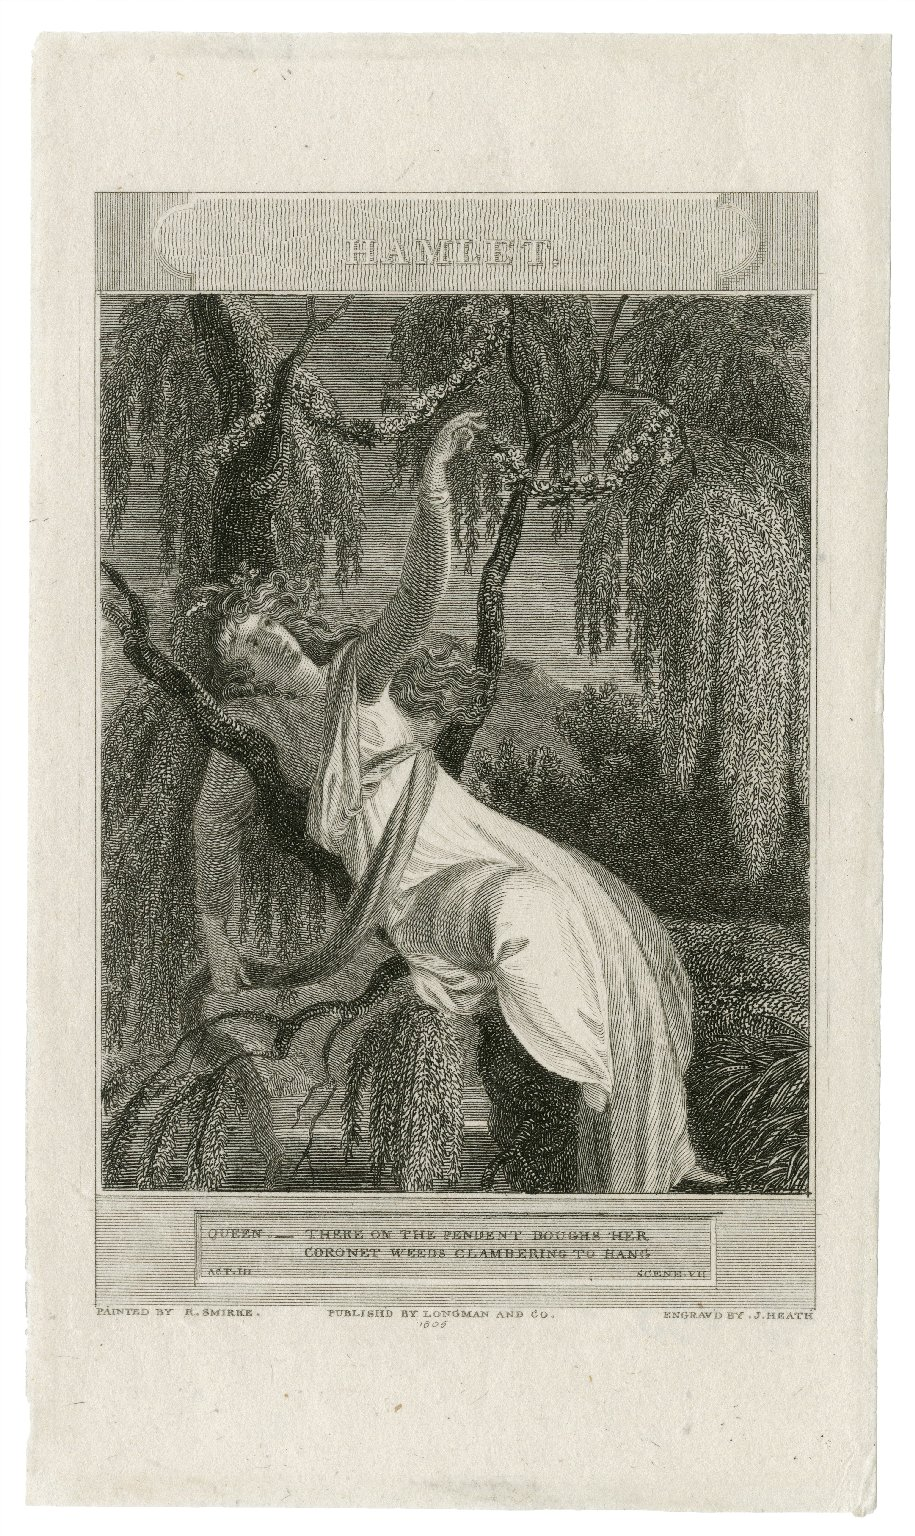 Hamlet ... there on the pendent boughs her coronet weeds clambering to hang, act III [i.e., IV], scene vii [graphic] / painted by R. Smirke ; engrav'd by J. Heath.